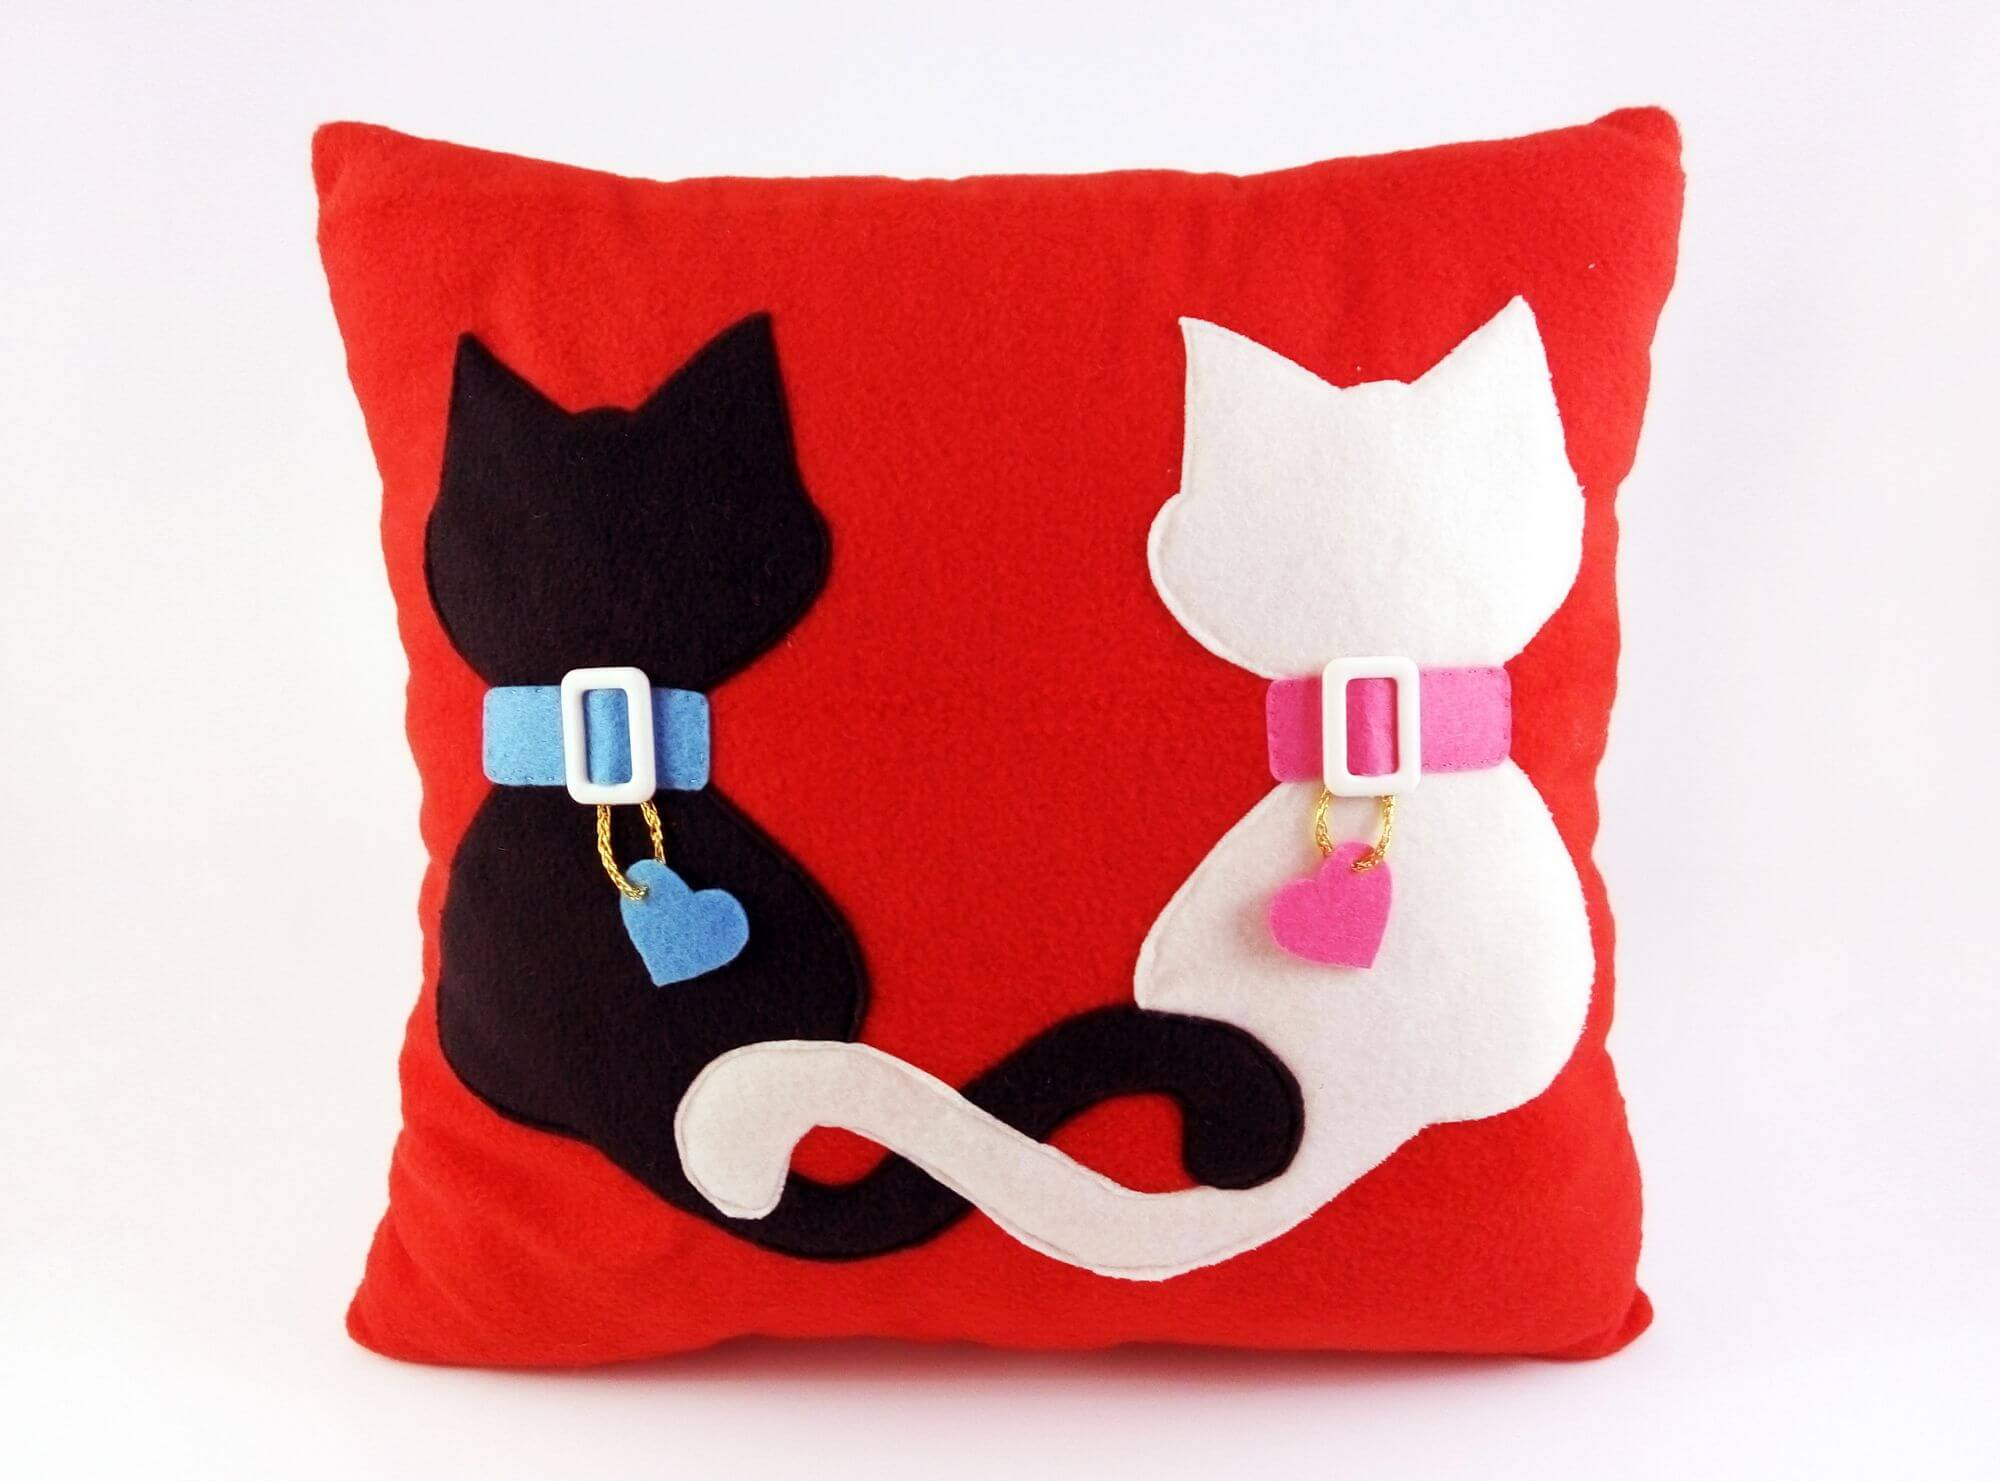 Resultado de imagen para cat pillows | cute pillows | Pinterest ...